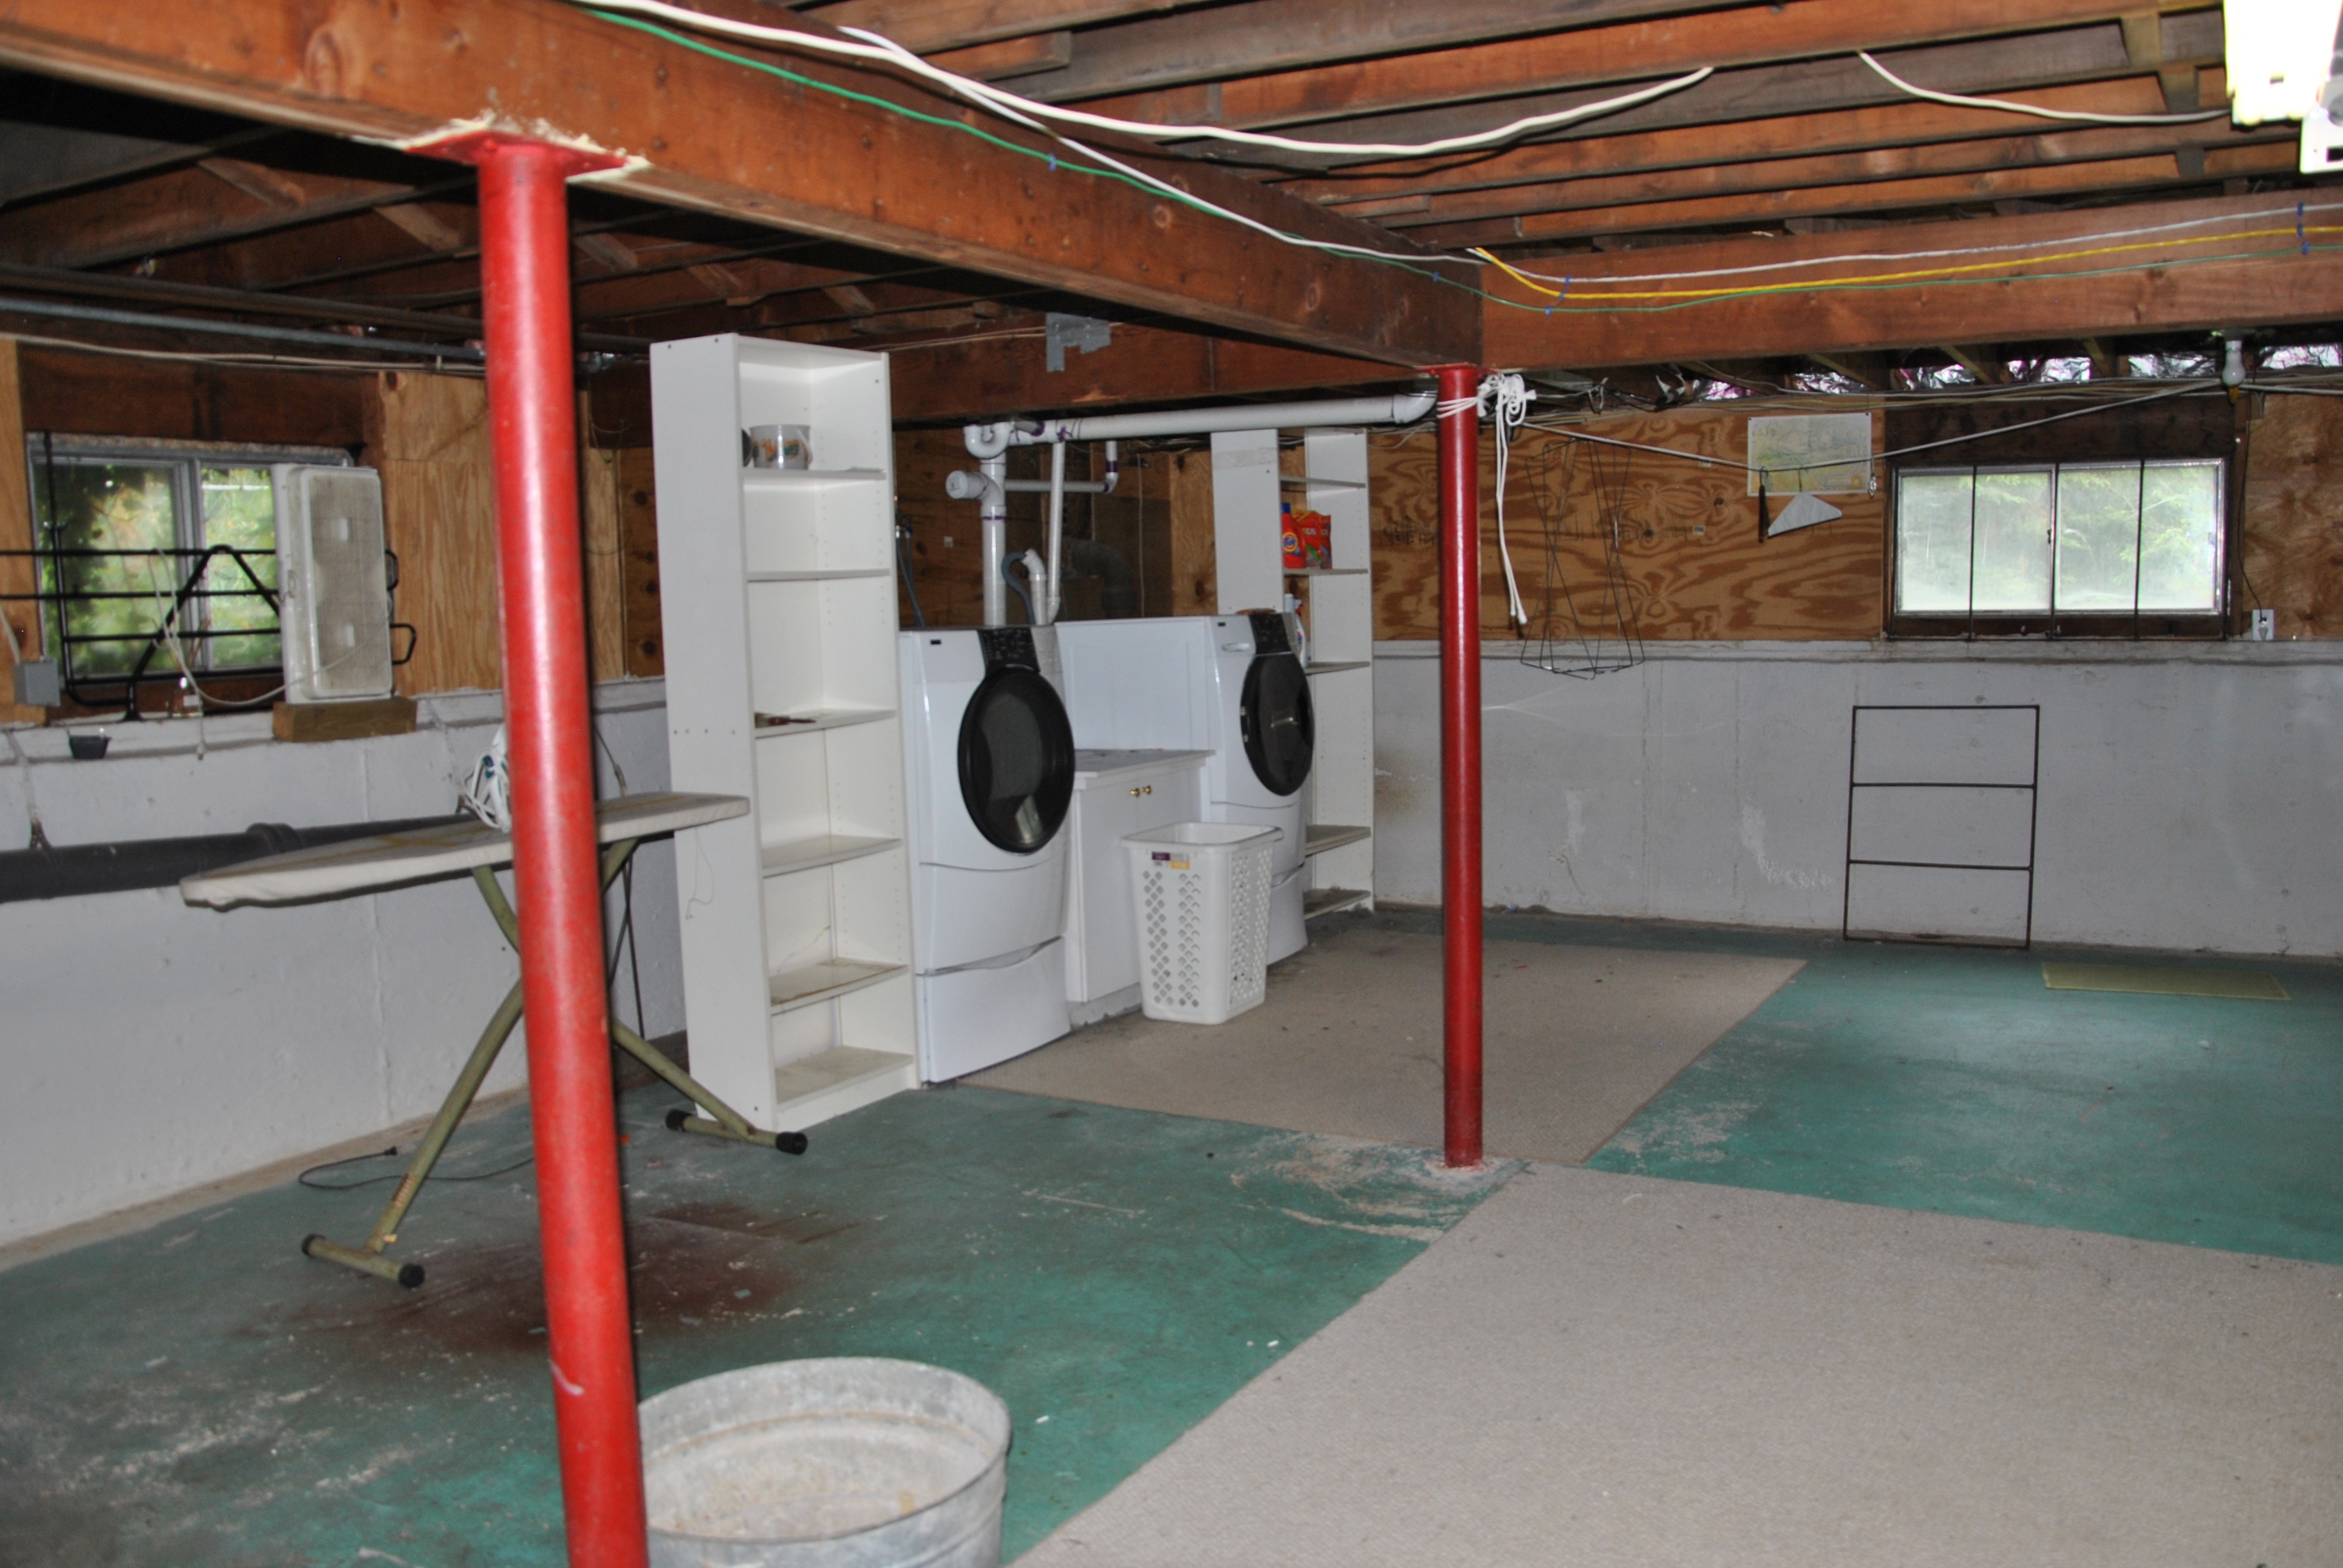 Basement Remodel Daisy  Daydreams - Unfinished basement laundry room ideas